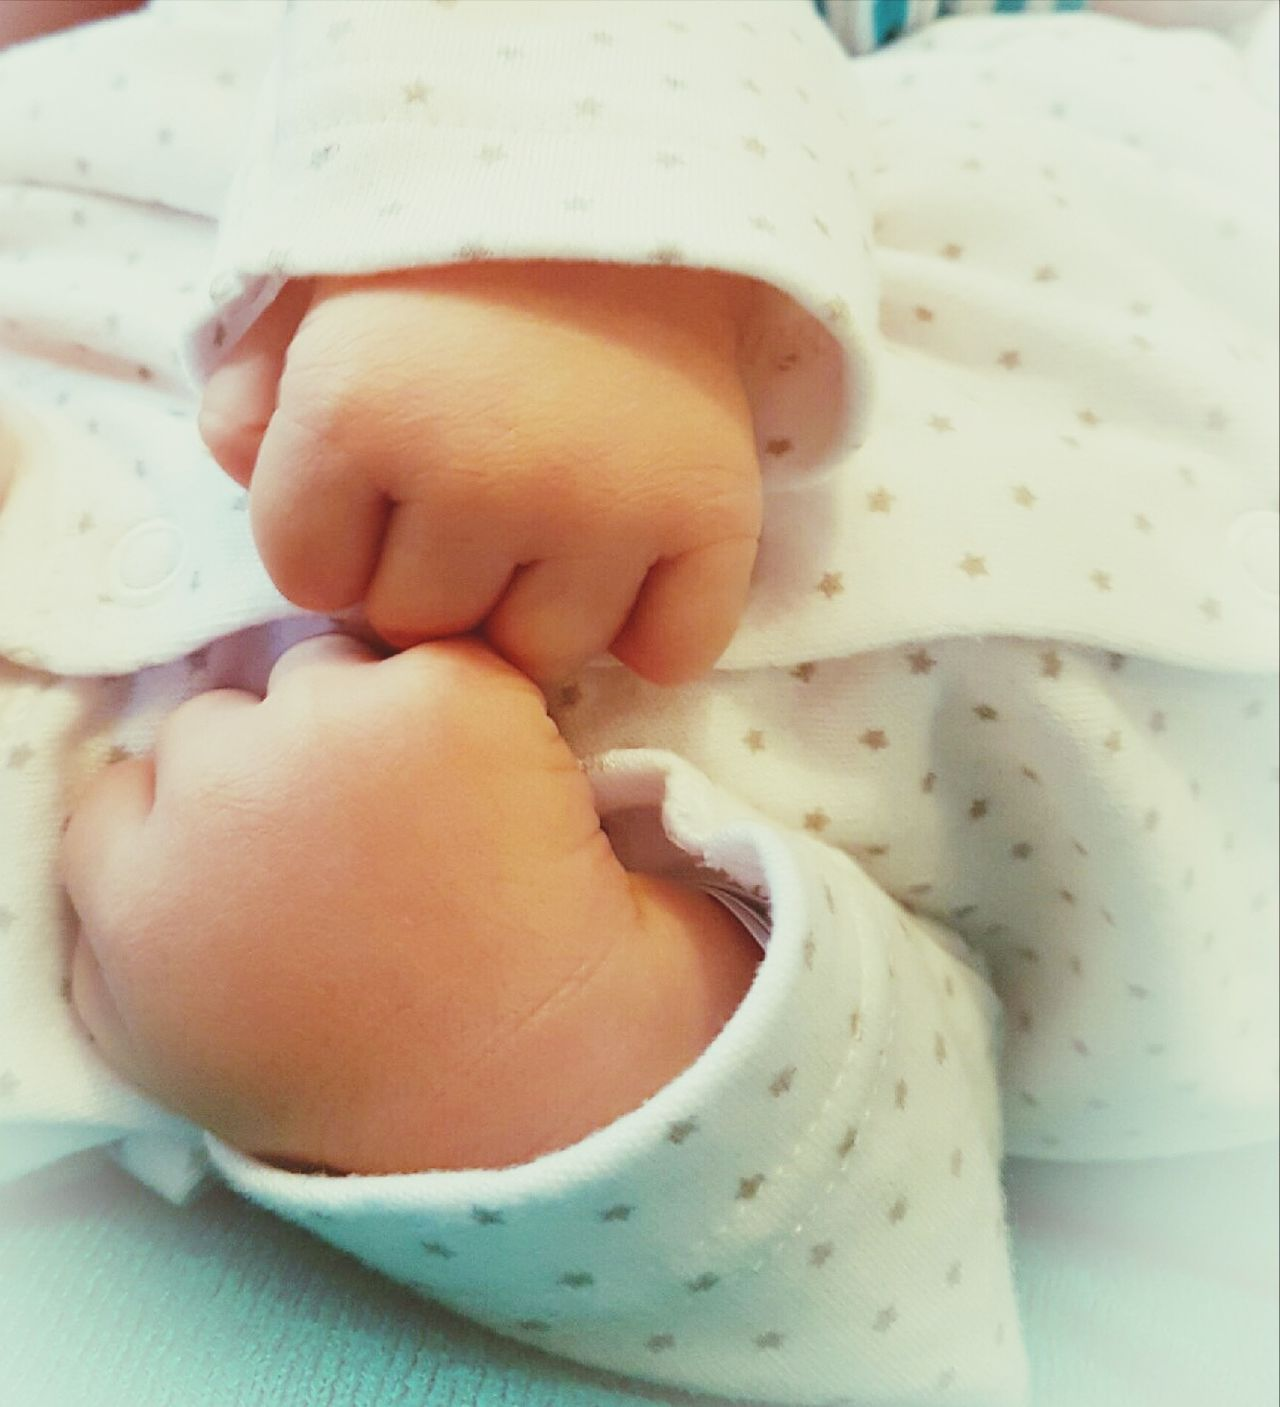 The sweet innocence of a newborn baby. Baby Human Body Part Newborn Close-up Beauty In Nature Newborns Newborn Baby Boy ınnocence Fragility Fragile Beauty Gentle Miracle Of Life Miracle Of Nature